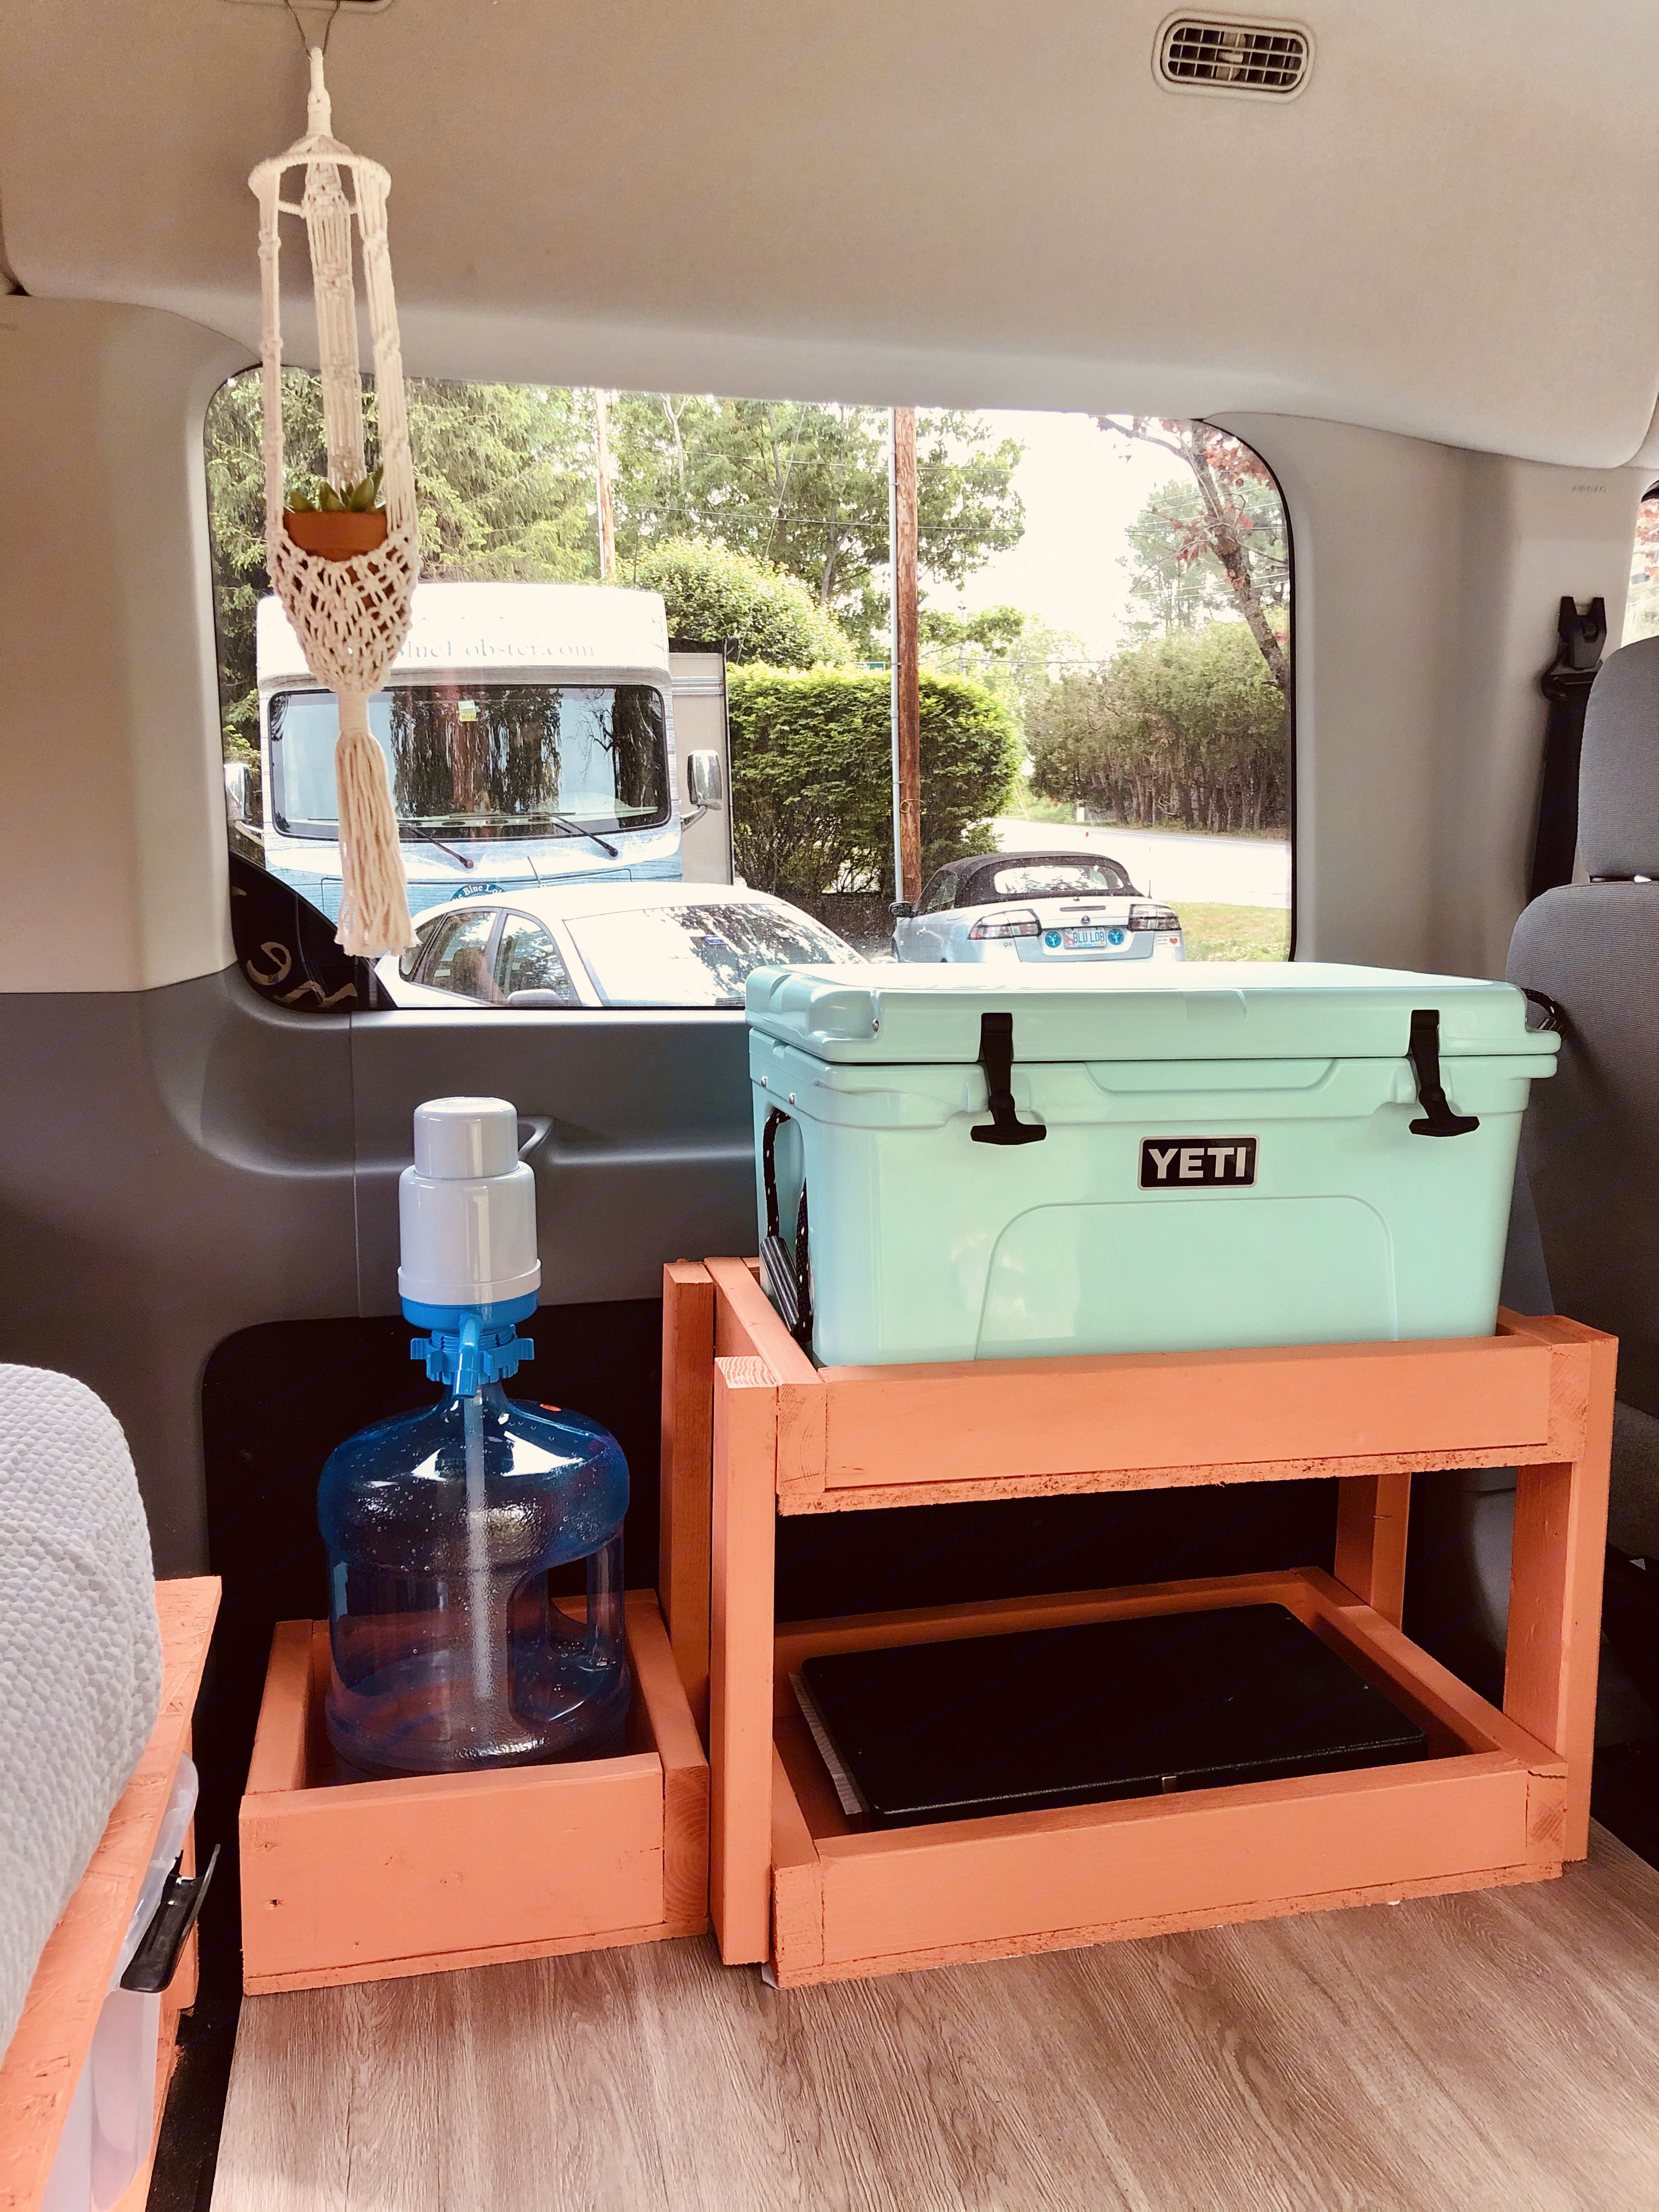 Tundra Yeti cooler, 5 gallon water with pump. Ford Custom Transit 2016